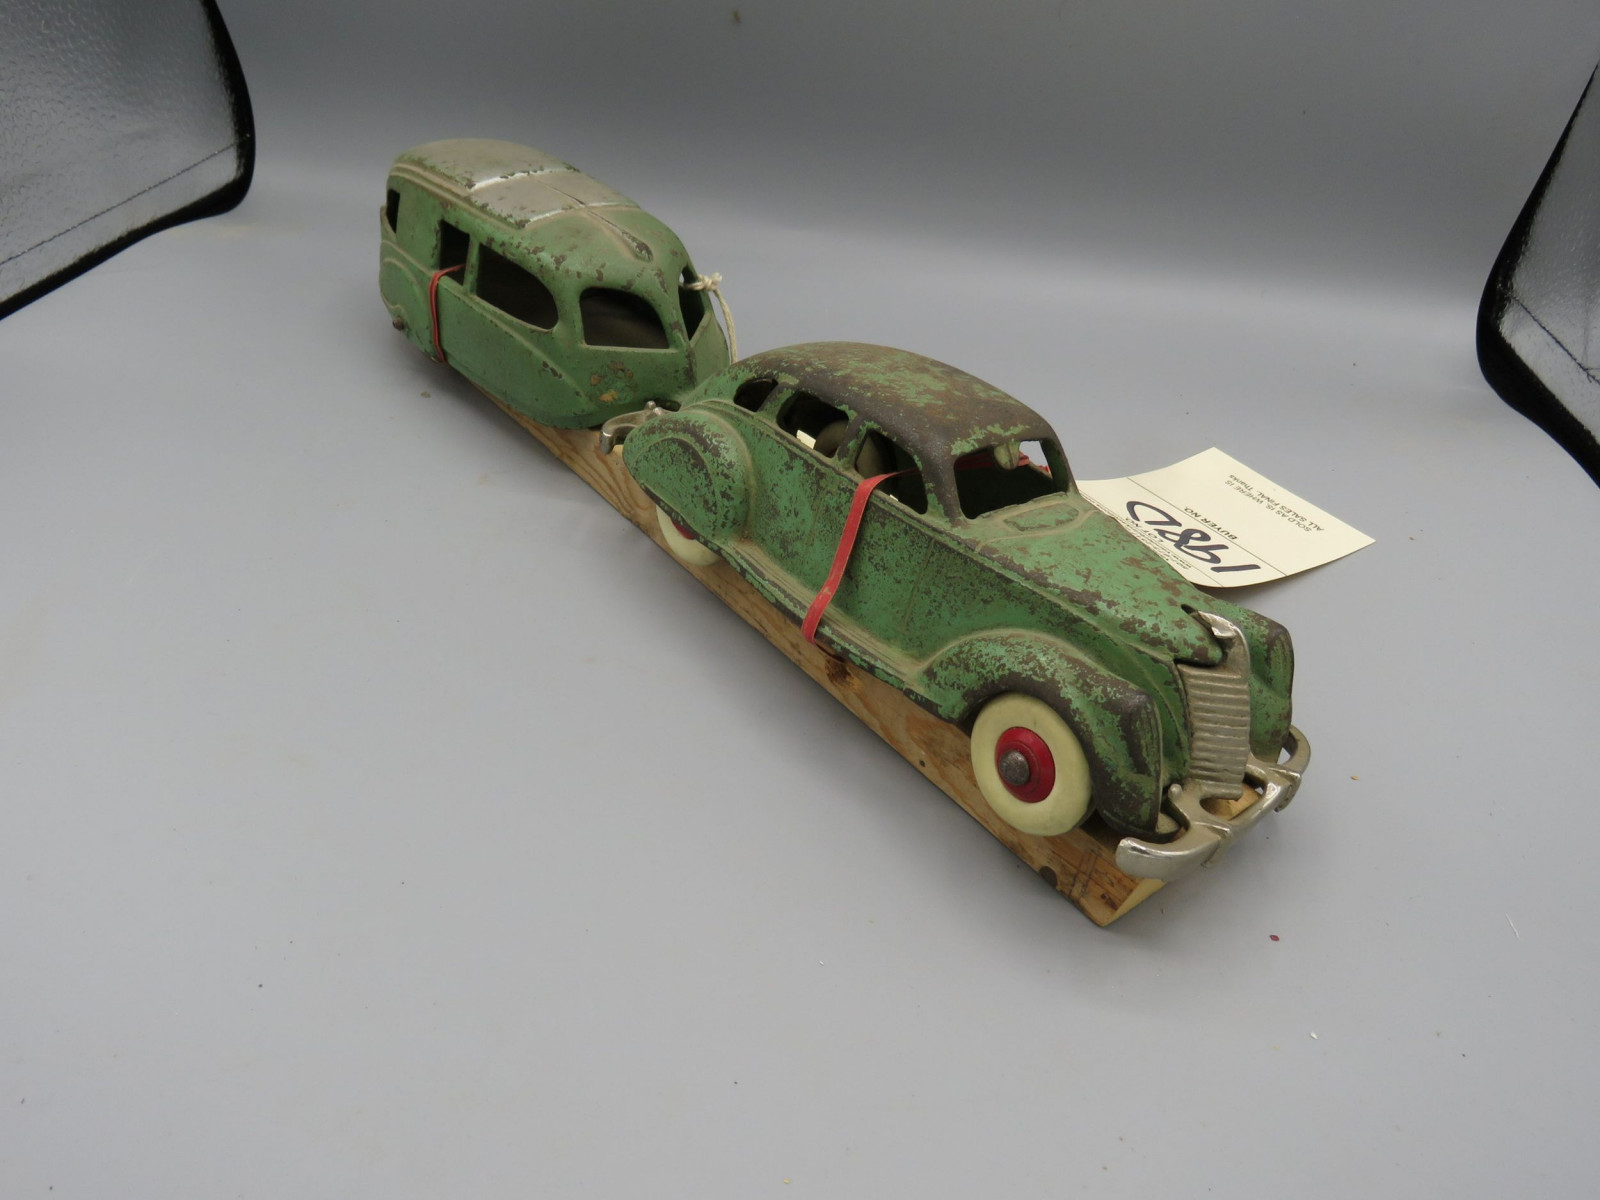 Hubley Cast Iron Car with Camper @1935 Approx. 14 inches - Image 2